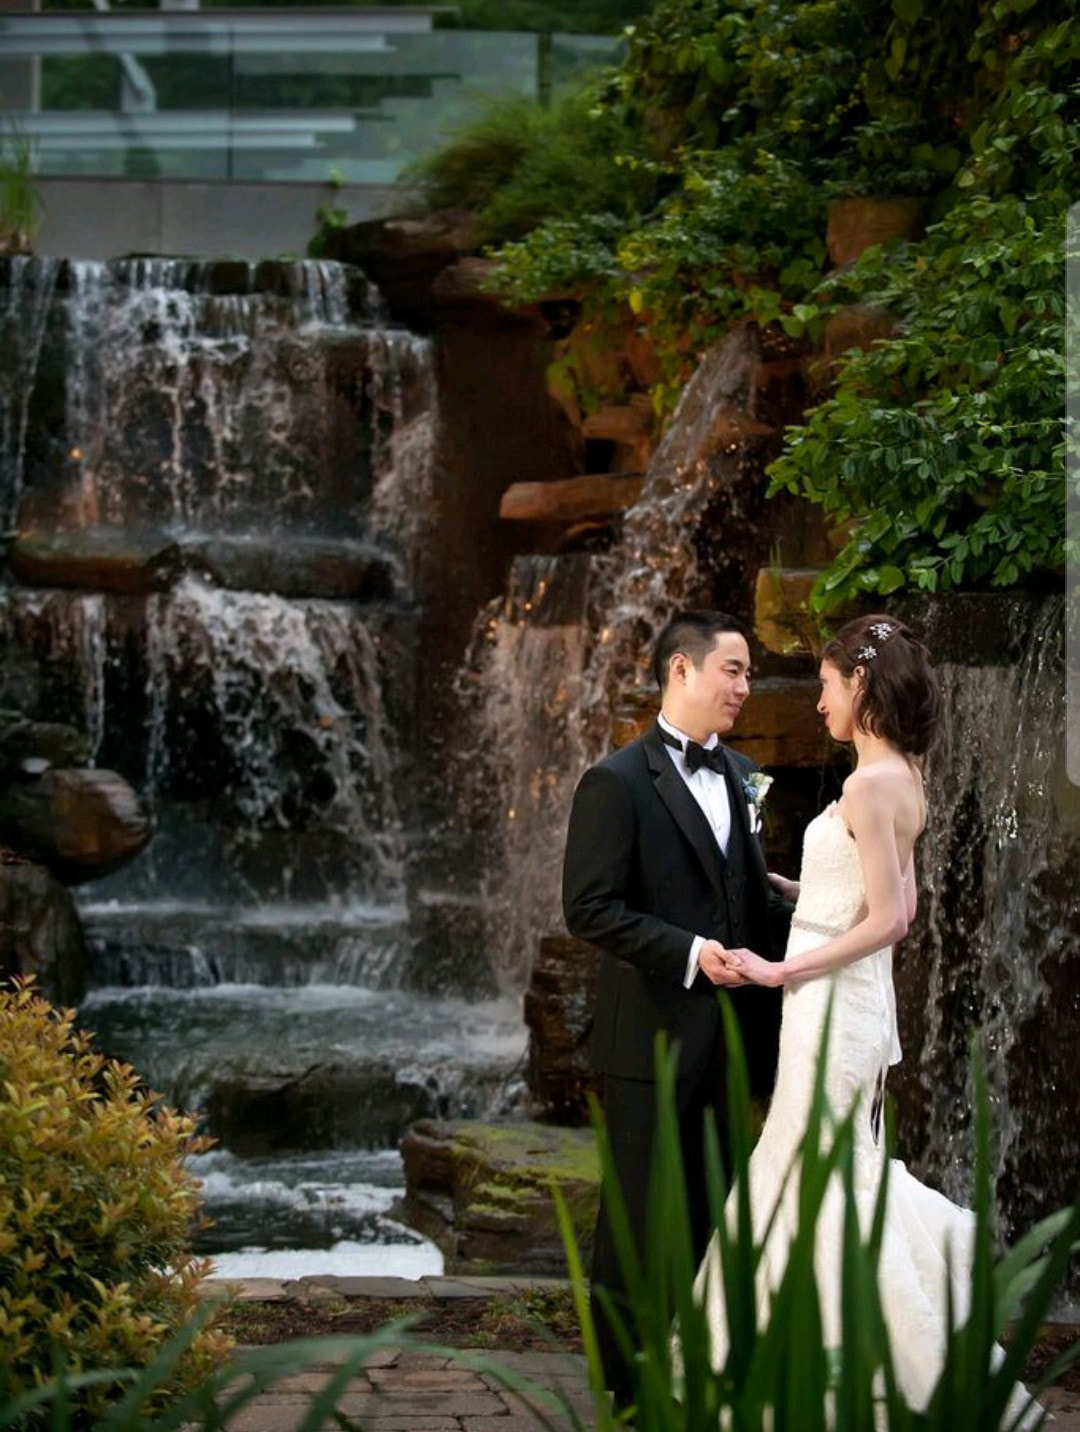 Pictured: couple getting married in front of the waterfalls